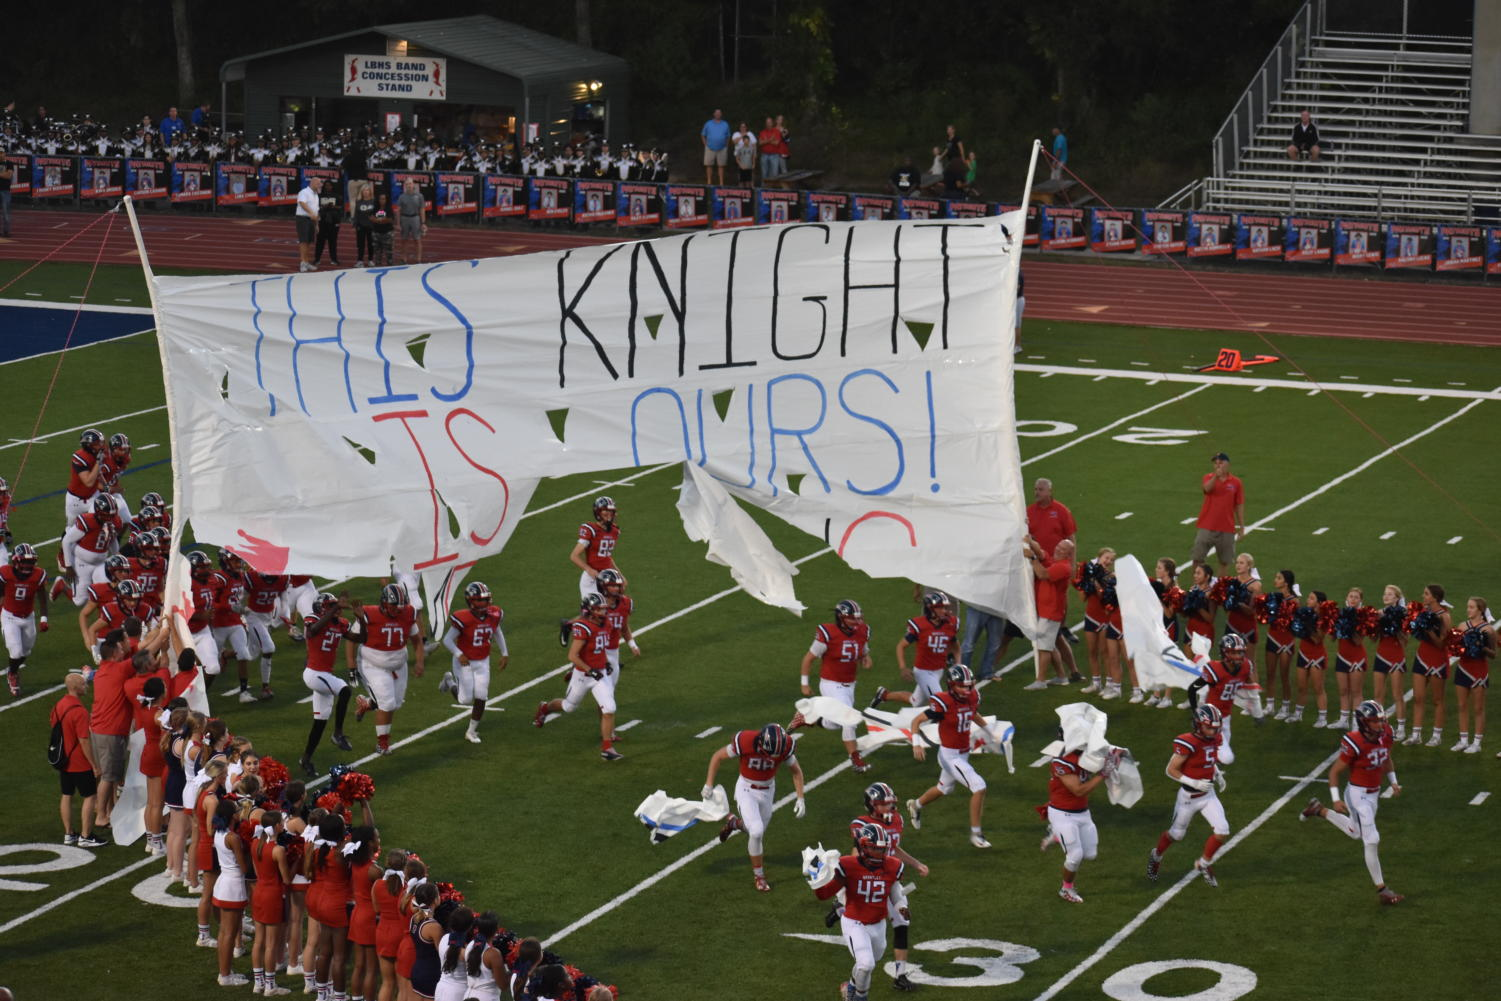 On Friday, Oct. 11, the varsity football team tears through the homecoming banner as they begin their game. The game was the first on the newly re-turfed Tom Storey Field.